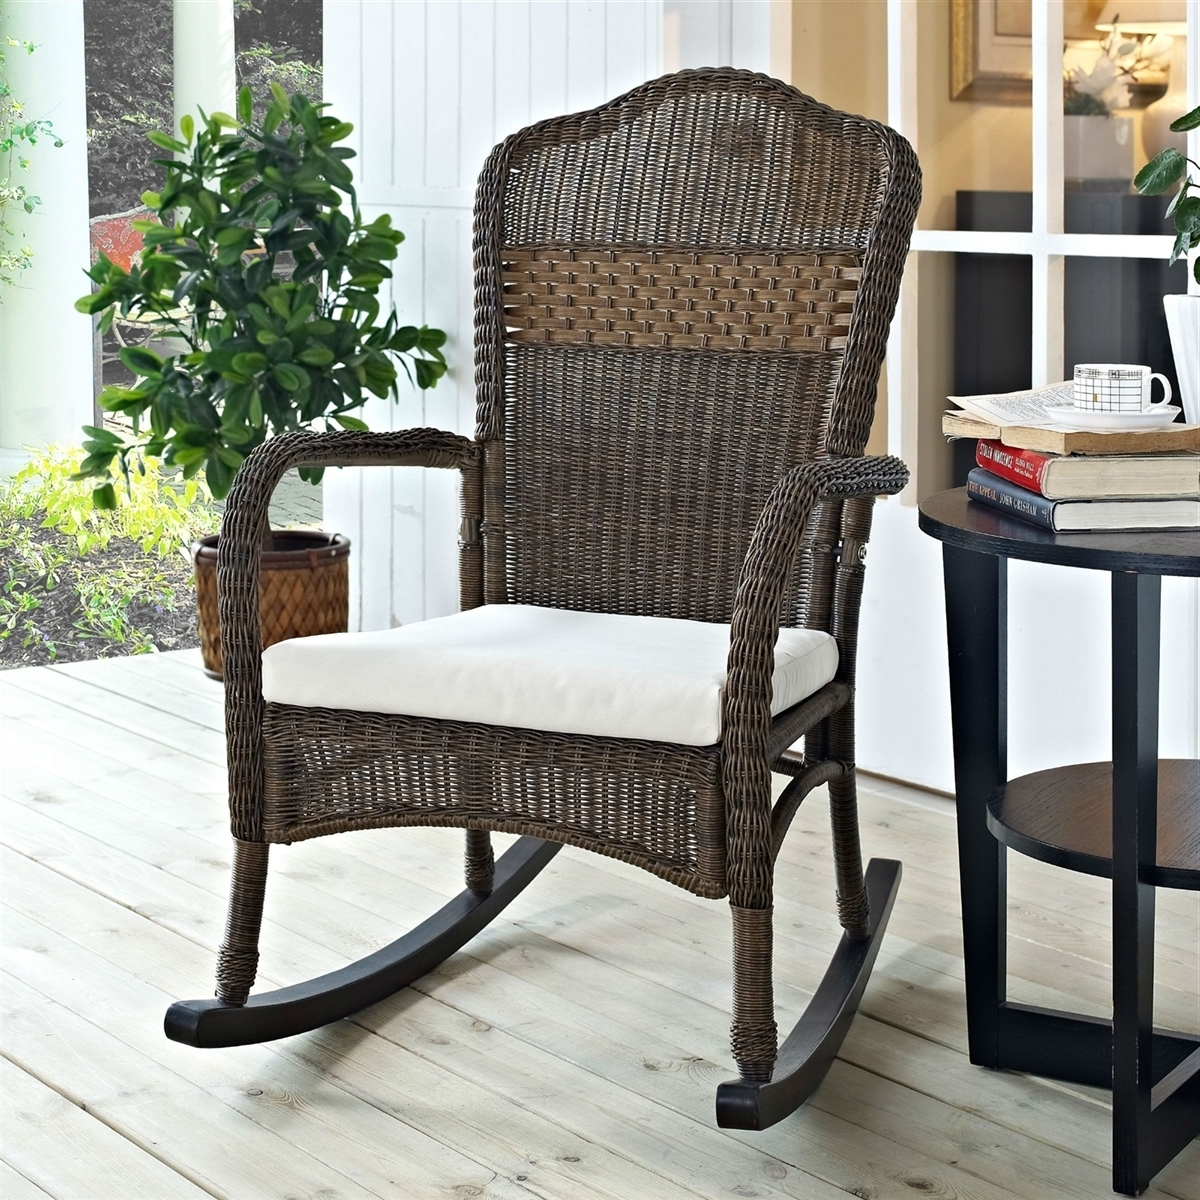 Widely Used Indoor Wicker Rocking Chairs In Wicker Patio Furniture Rocking Chair Mocha With Beige Cushion (View 2 of 15)